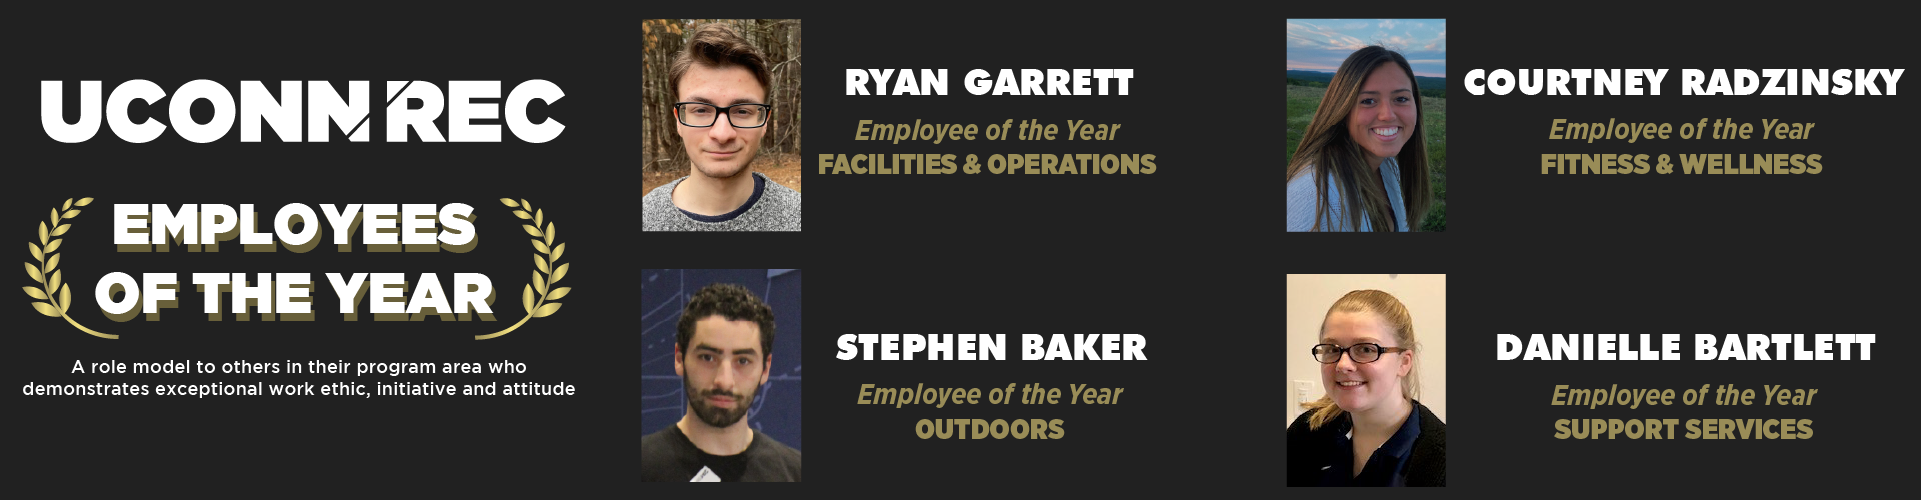 2021 Employees of the Year